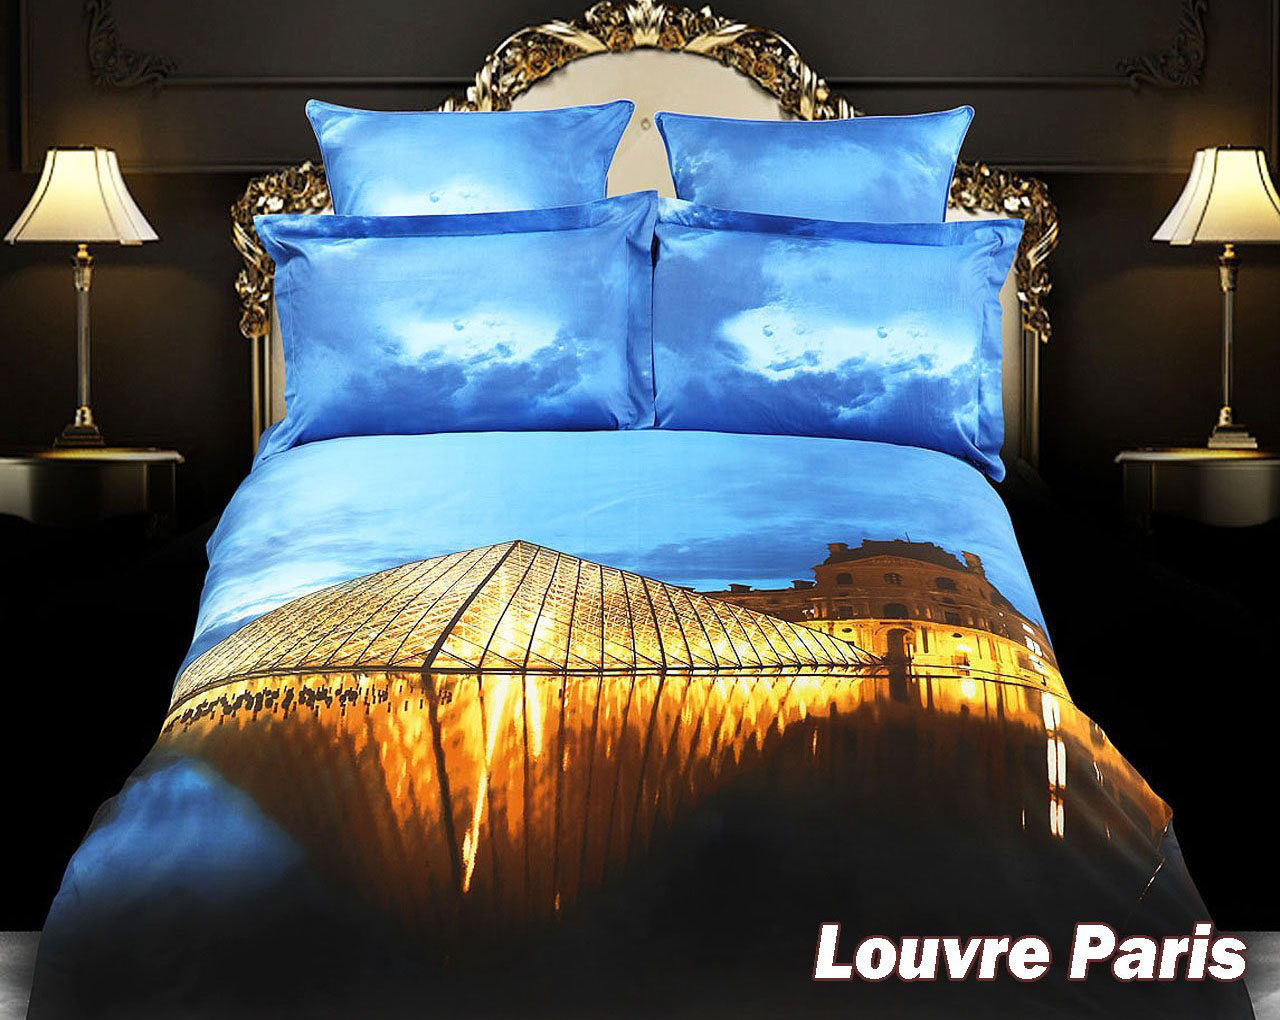 Louvre-Paris-Bedding Kitchen Decor Theme Ideas on kitchen decor art ideas, christmas themes ideas, bedroom themes ideas, kitchen theme canisters, garden themes ideas, kitchen decor themes fruits, jewelry themes ideas, kitchen wall decor, kitchen decor sets, kitchen popular kitchen themes decor, sports themes ideas, kitchen decorating themes, kitchen decor color ideas, kitchen themes colors, kitchen island designs, kitchen accessories, living room themes ideas,